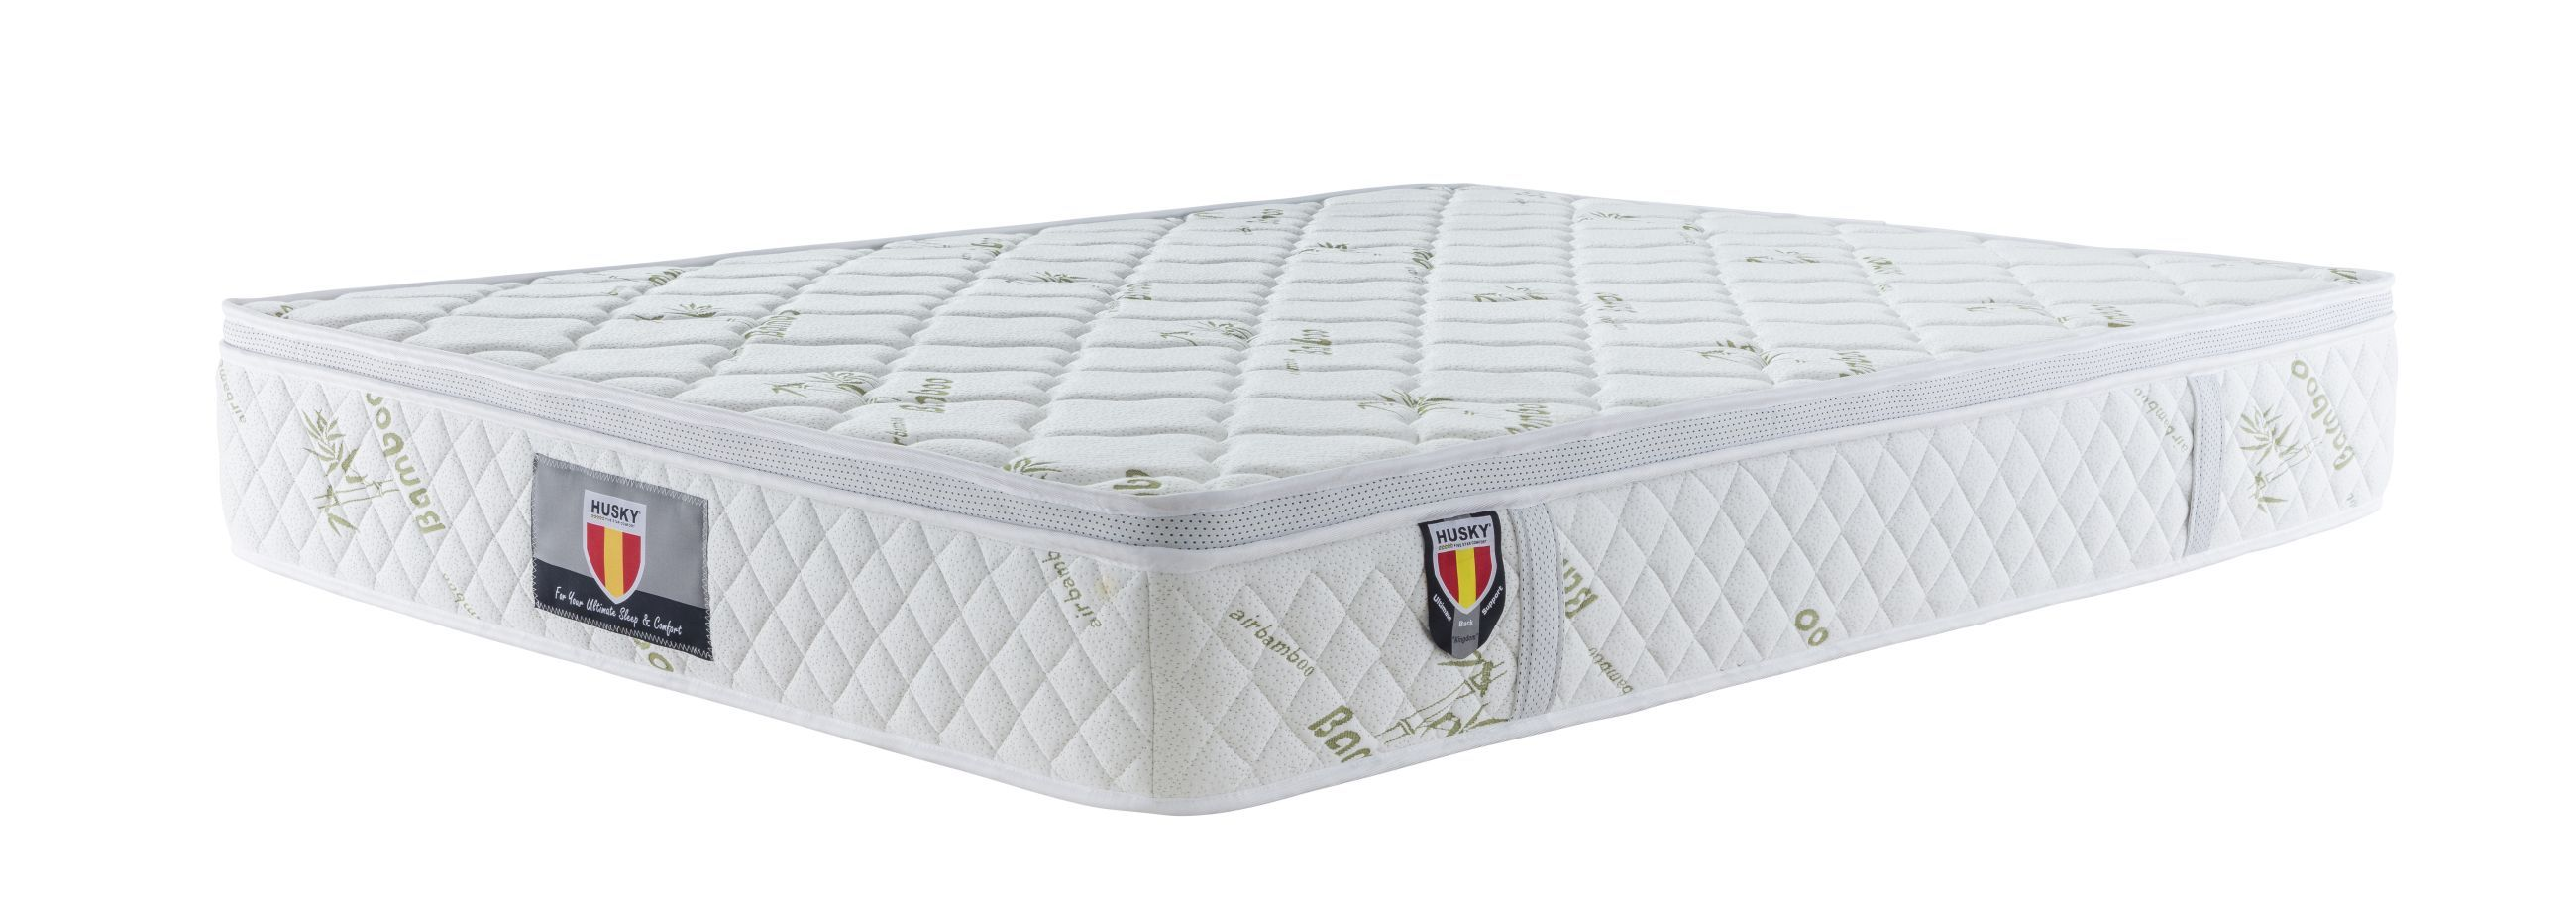 4 Kingdom Husky Furniture And Mattress Five Star Comfort Pockect Coil Bambo Cover Euro Pillow Top